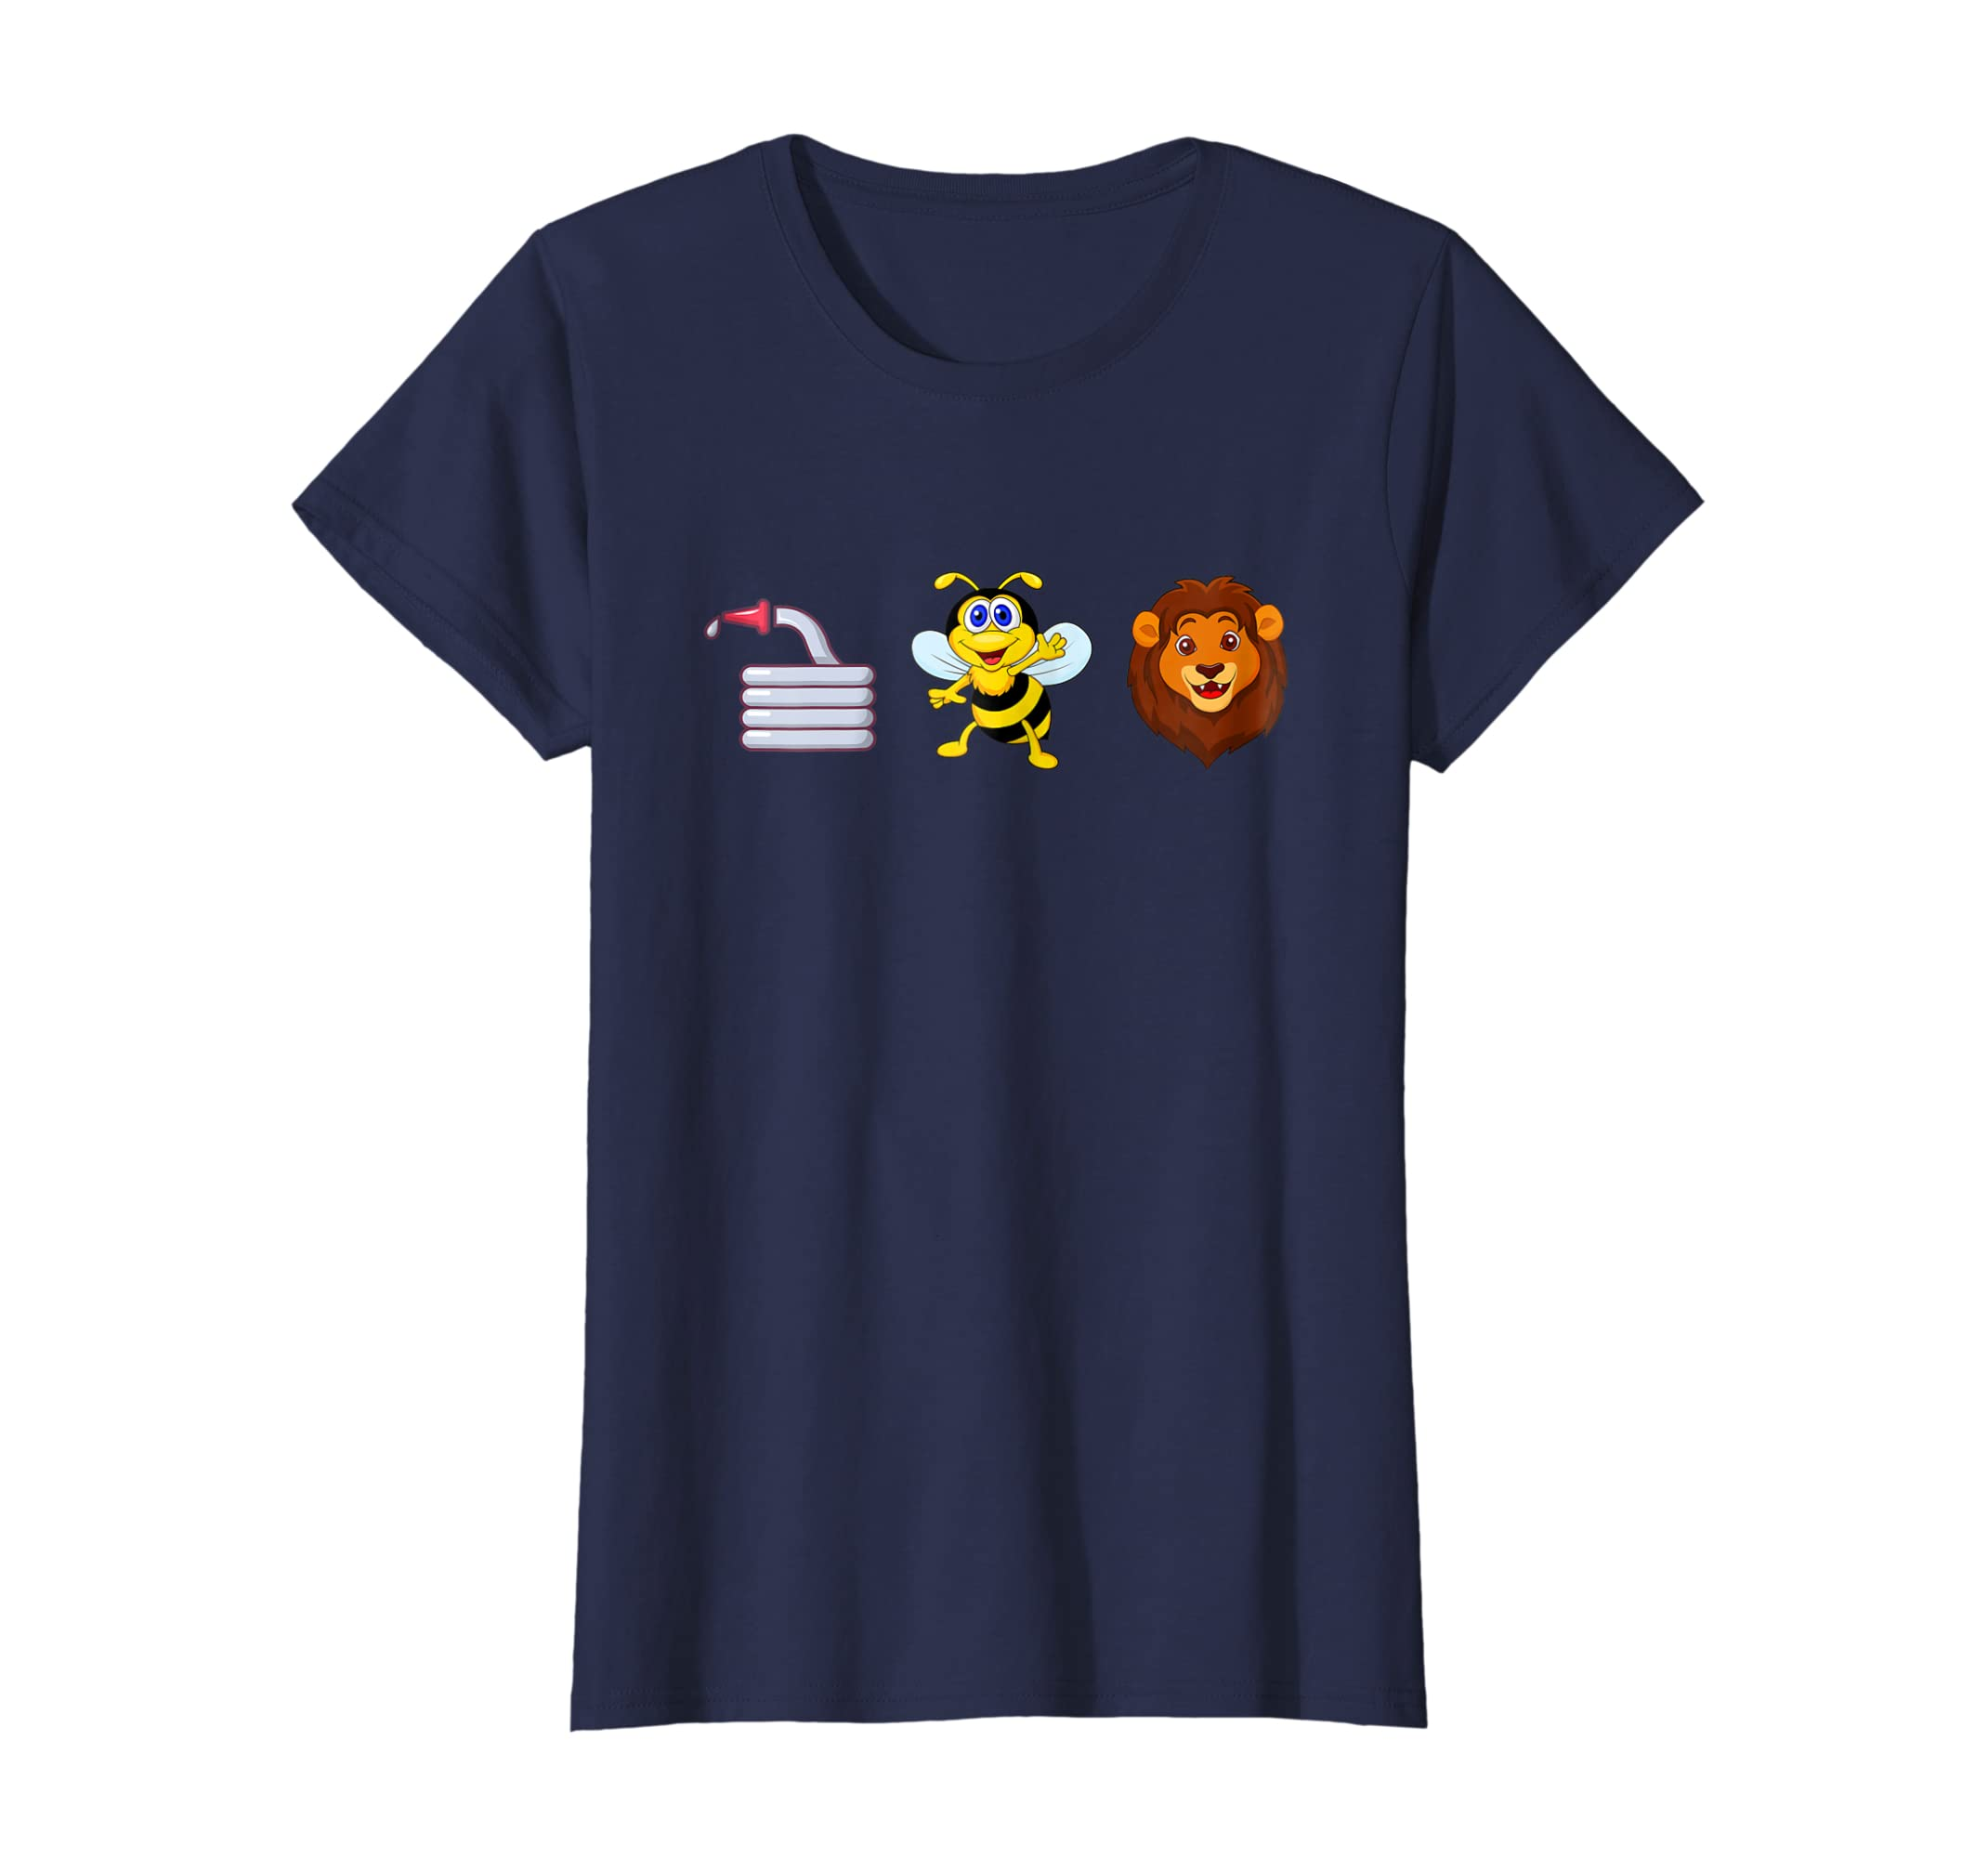 Amazon com: Hose Bee Lion Funny Meaning T-shirt Hoes Be Lying Double